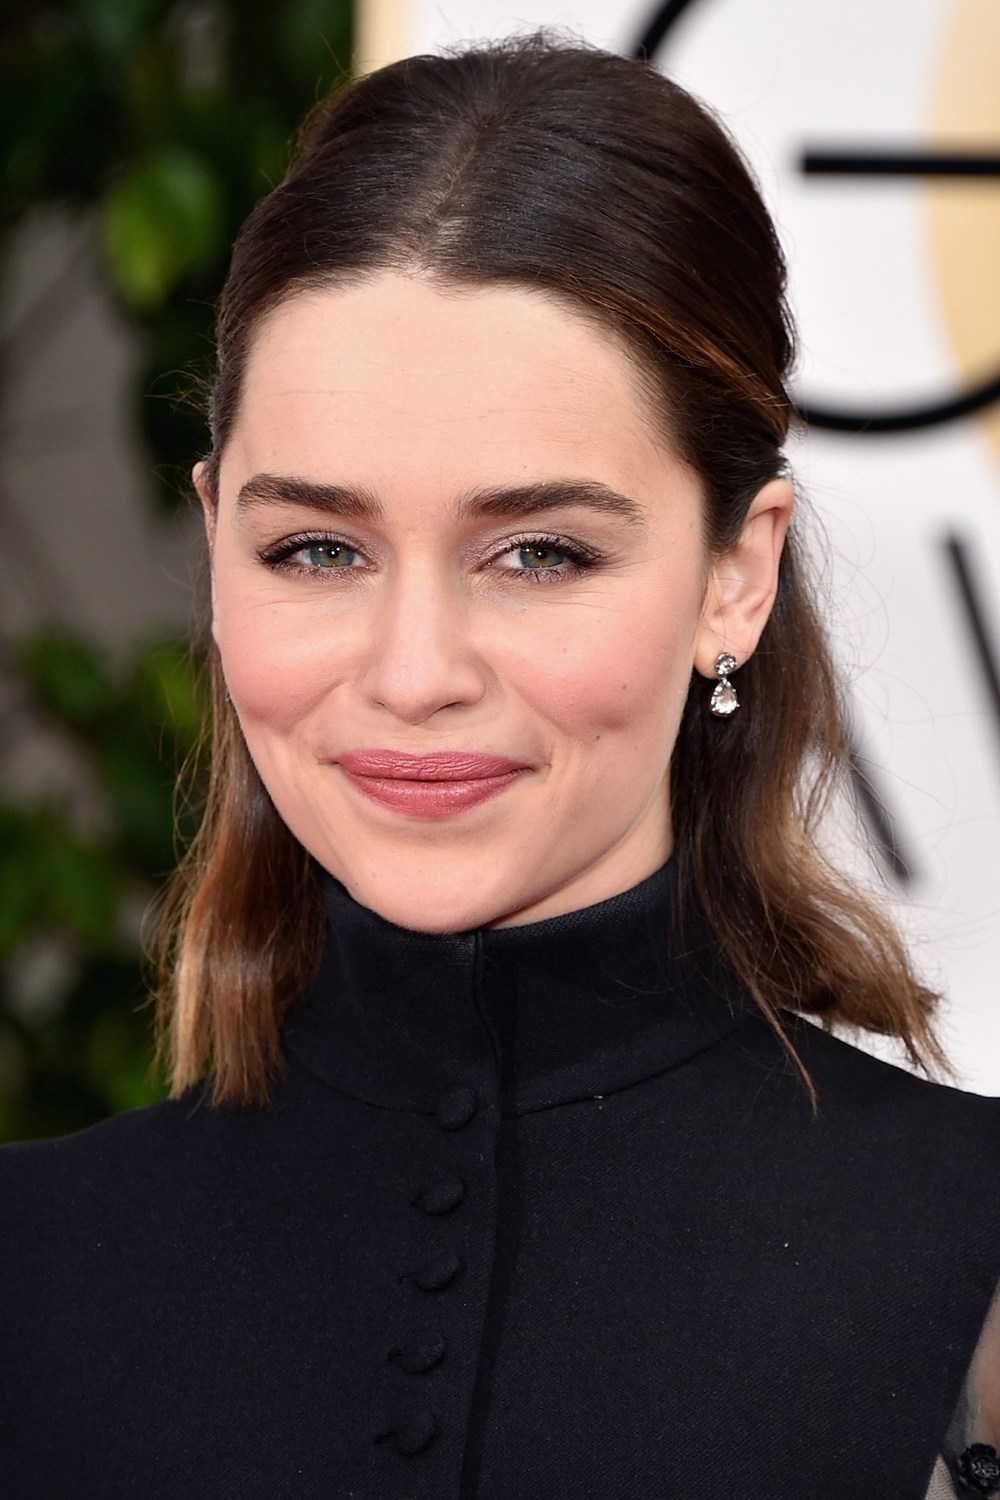 Rose-toned make-up and a half-up-half-down hairstyle lent Emilia Clarke a sophisticated, polished beauty.